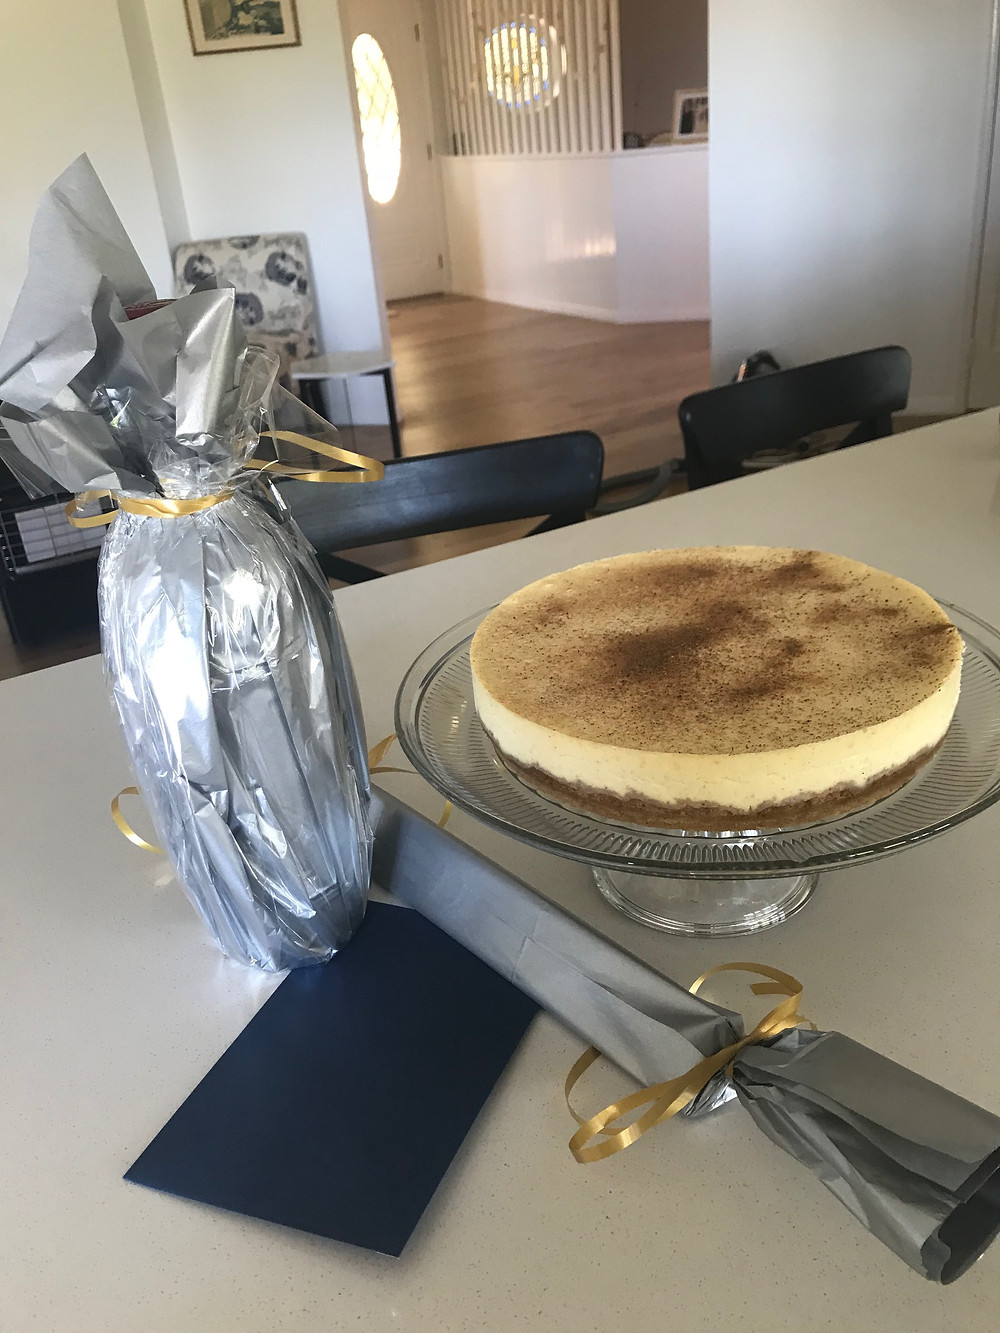 best father's day cheesecake on brisbane